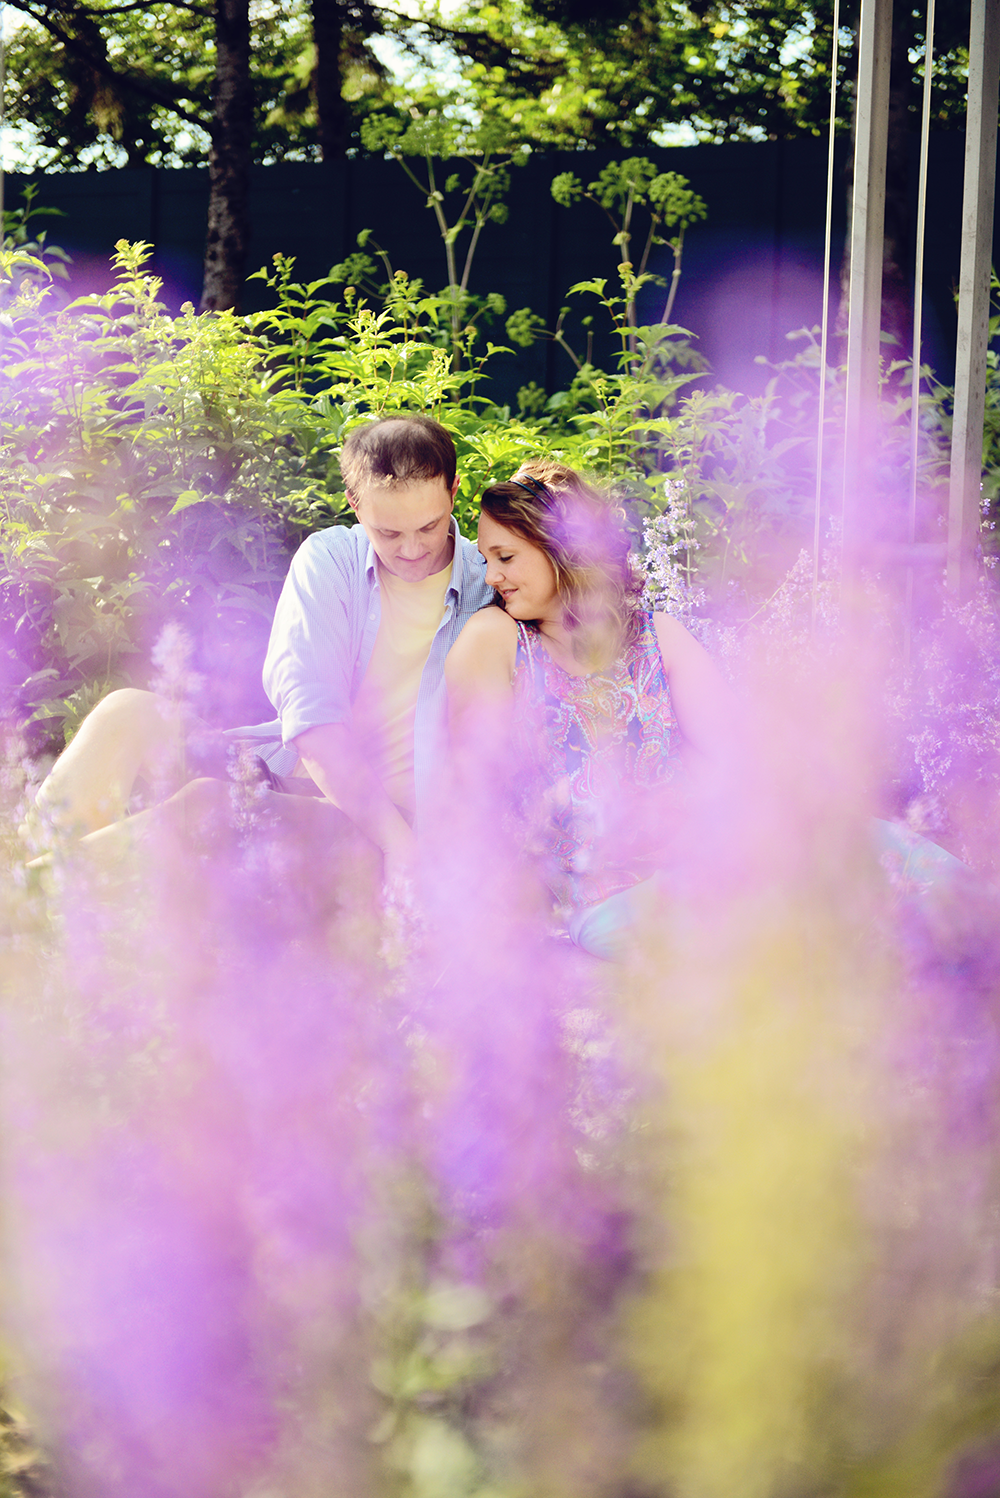 engagement-session-poses-flowers-minneapolis-minnesota